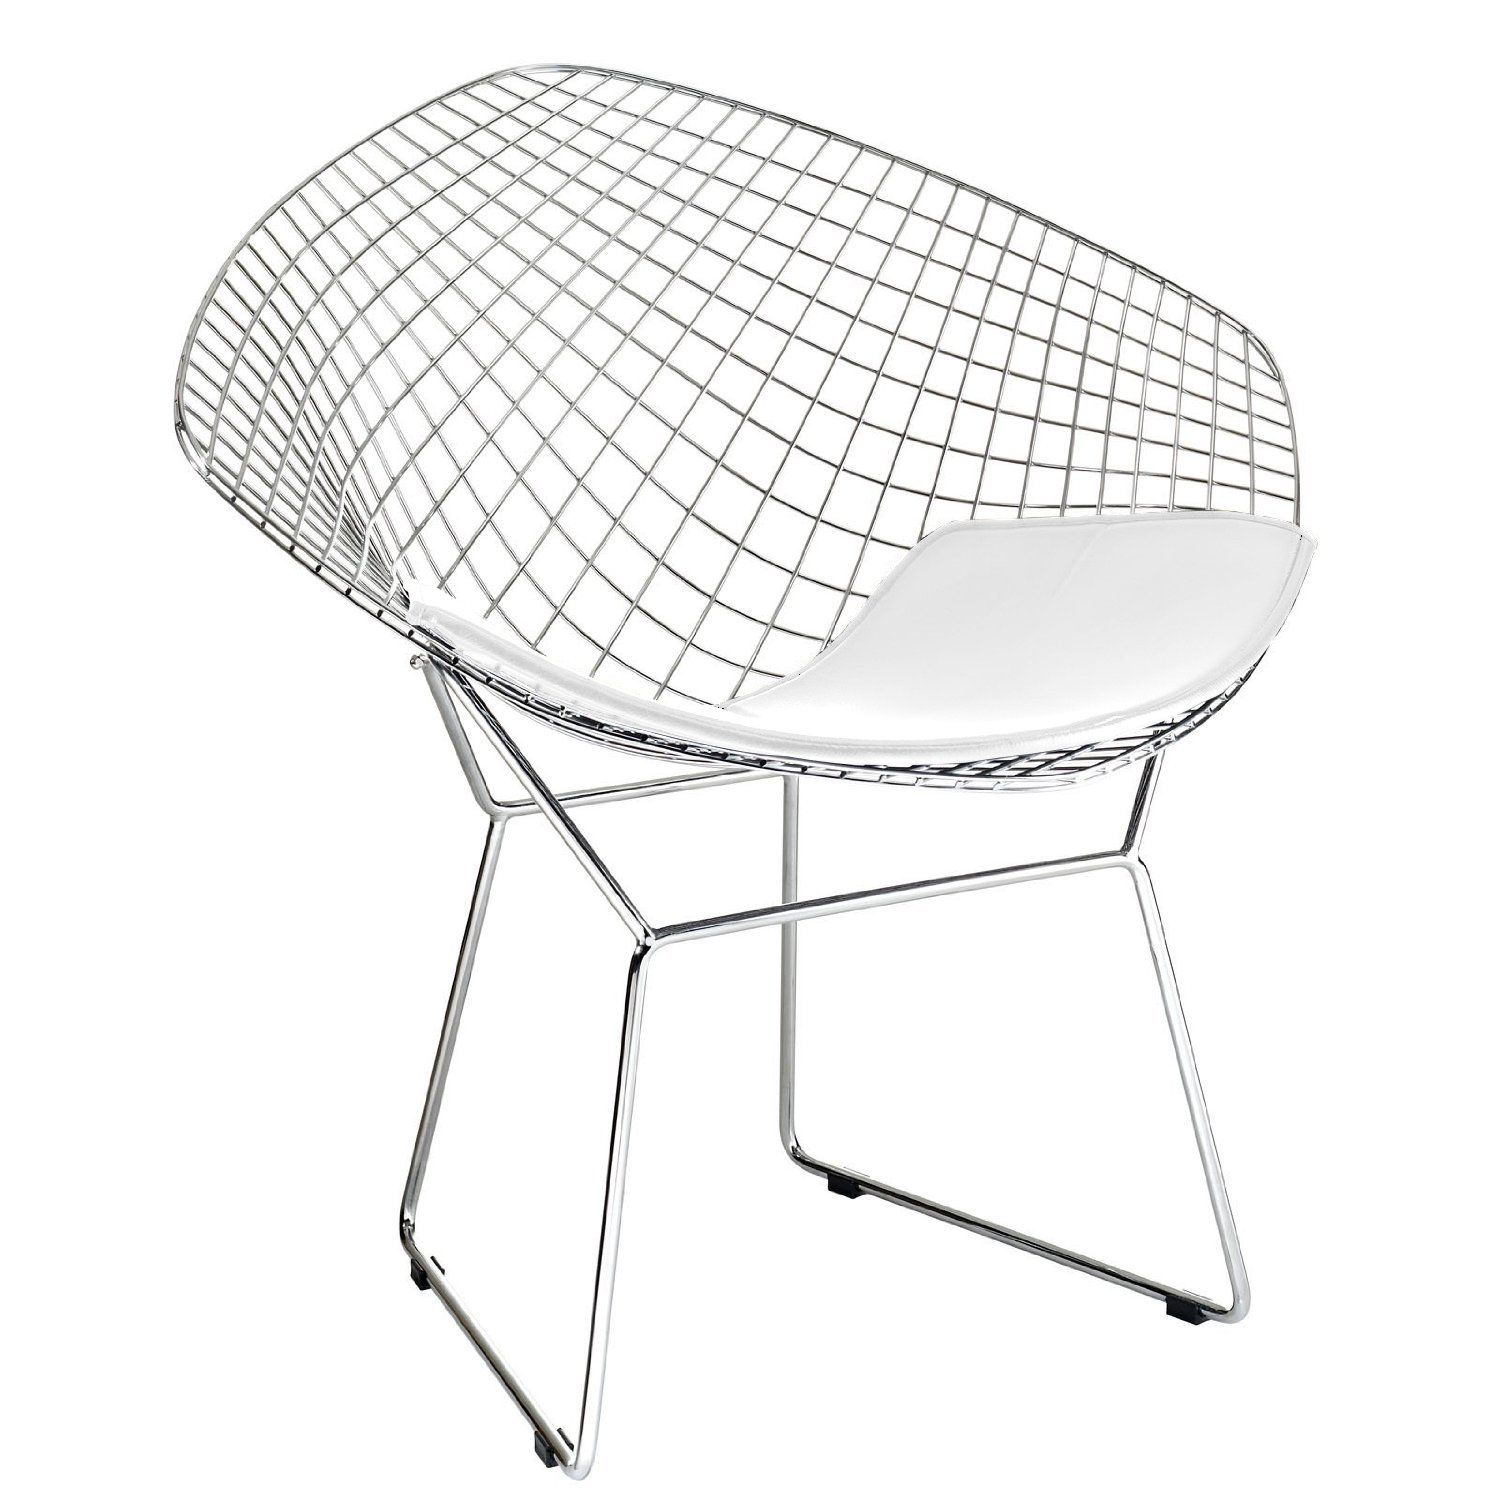 Bertoia Style Diamond Chair in Chrome Finish with White Seat Pad High Quality